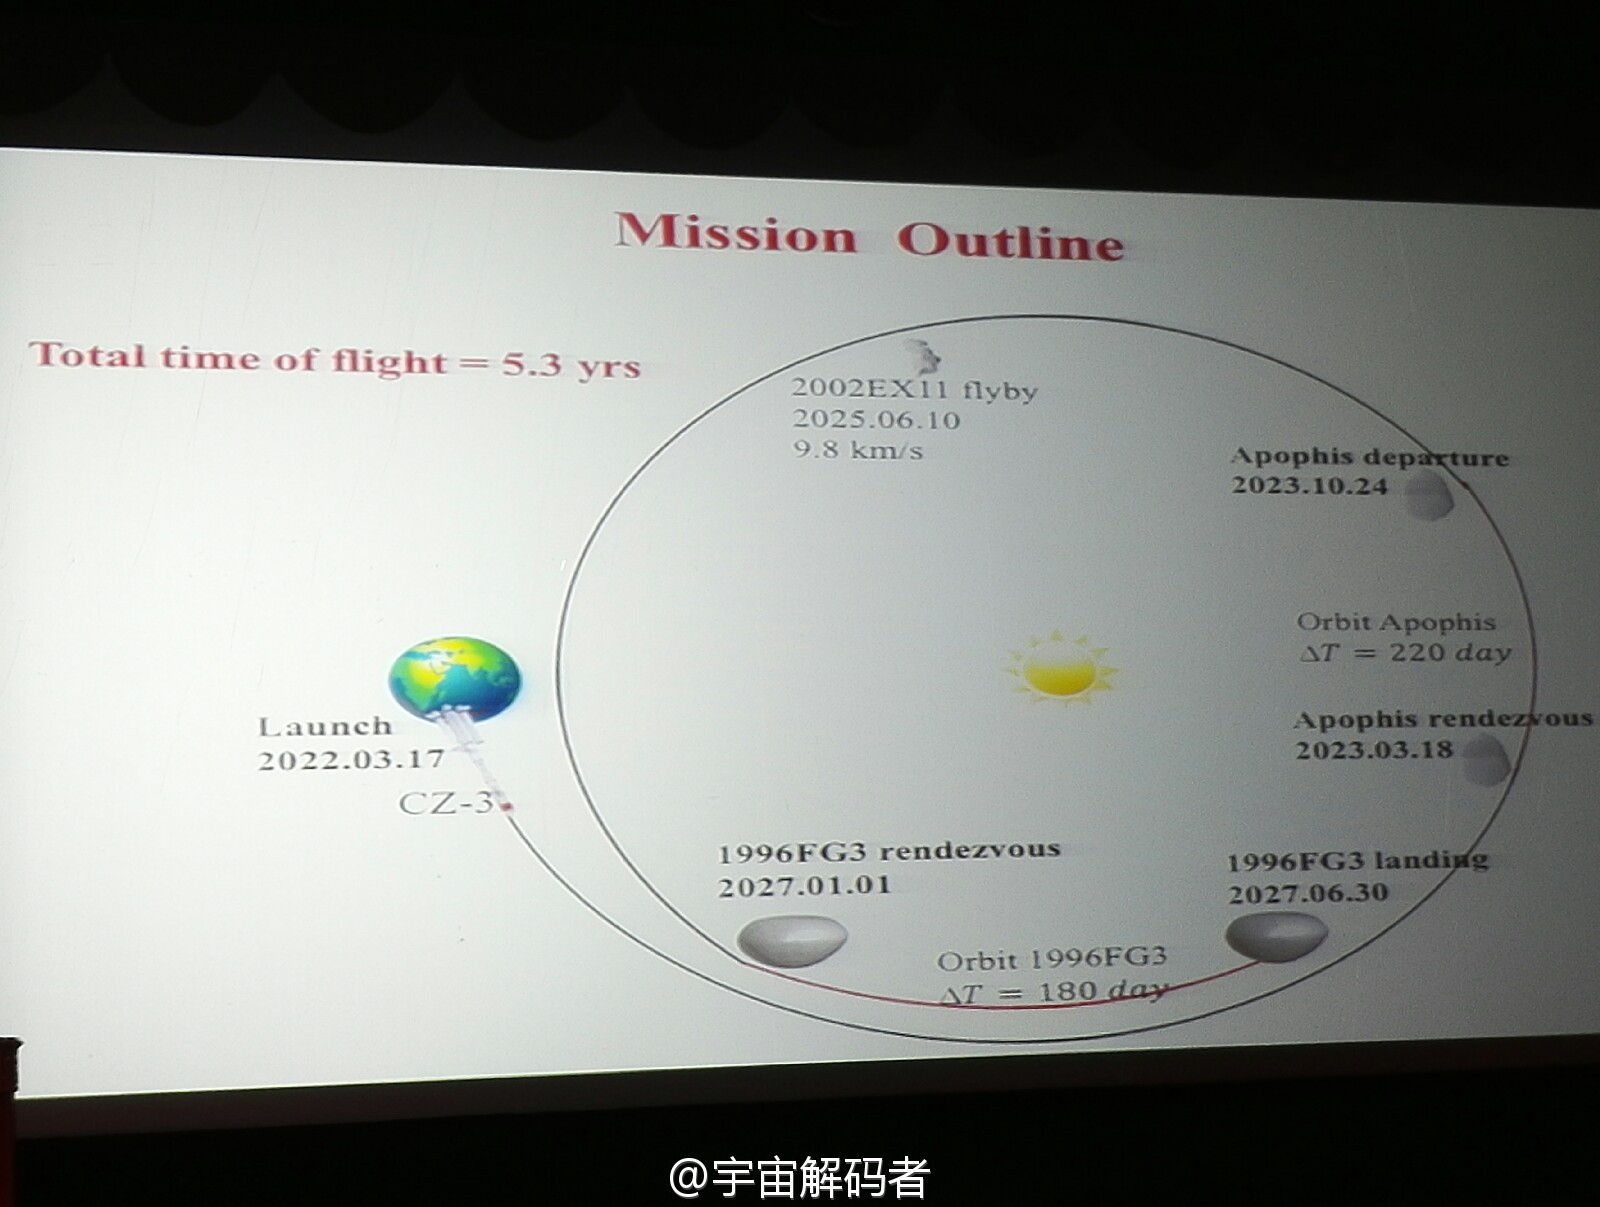 http://slappy.sweb.cz/others/china%20asteroid%20mission.jpg